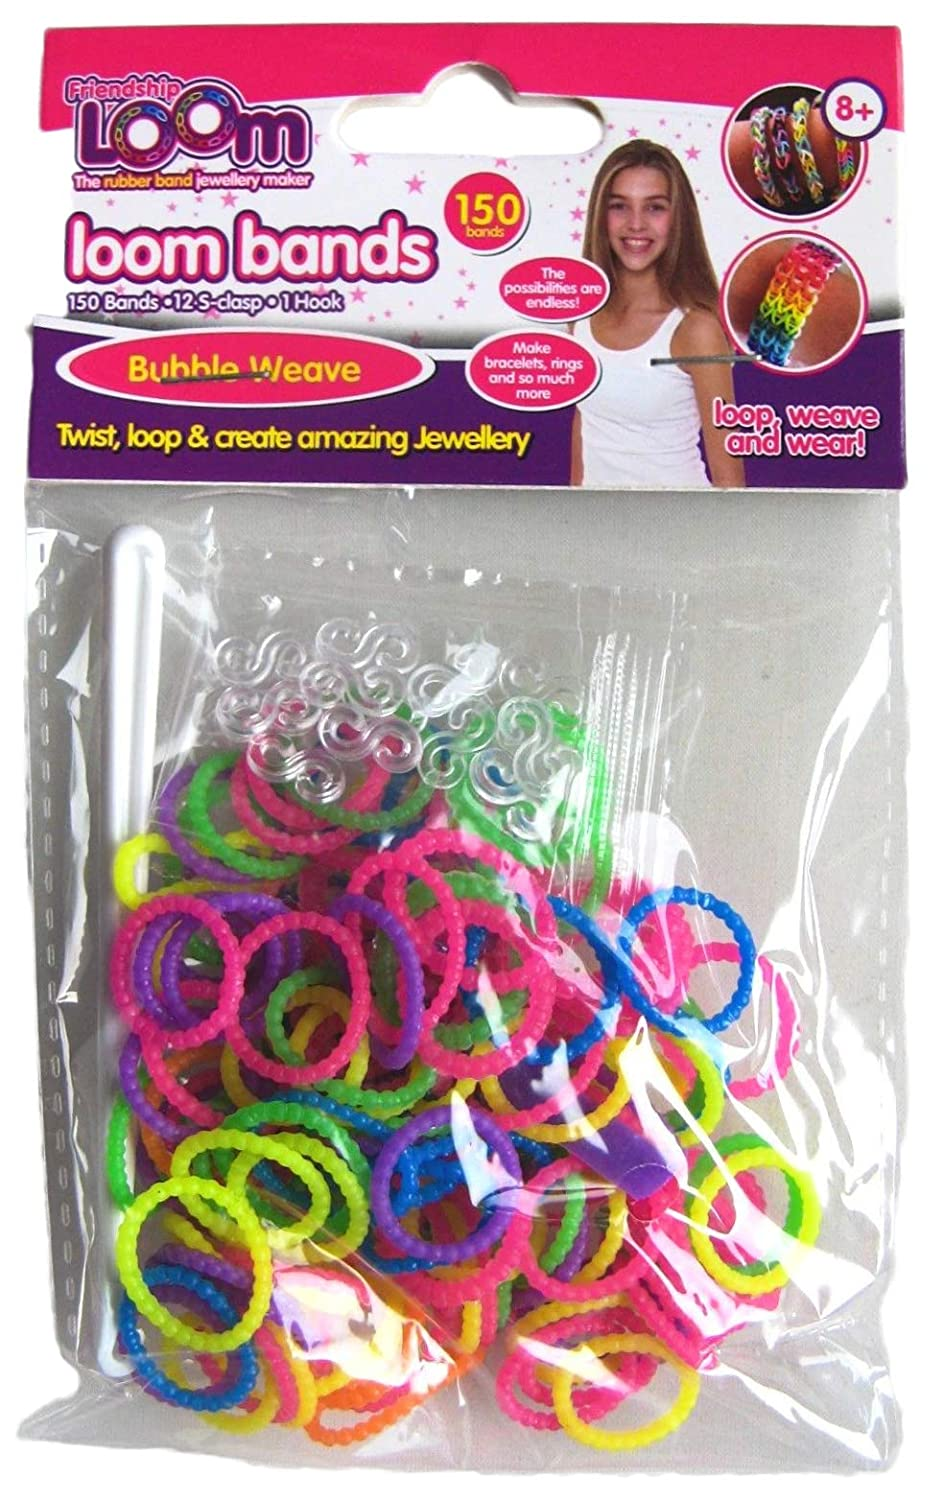 Friendship Loom Bands Jewellery Making - 150 Bubble Weave Bands HL376 Toy